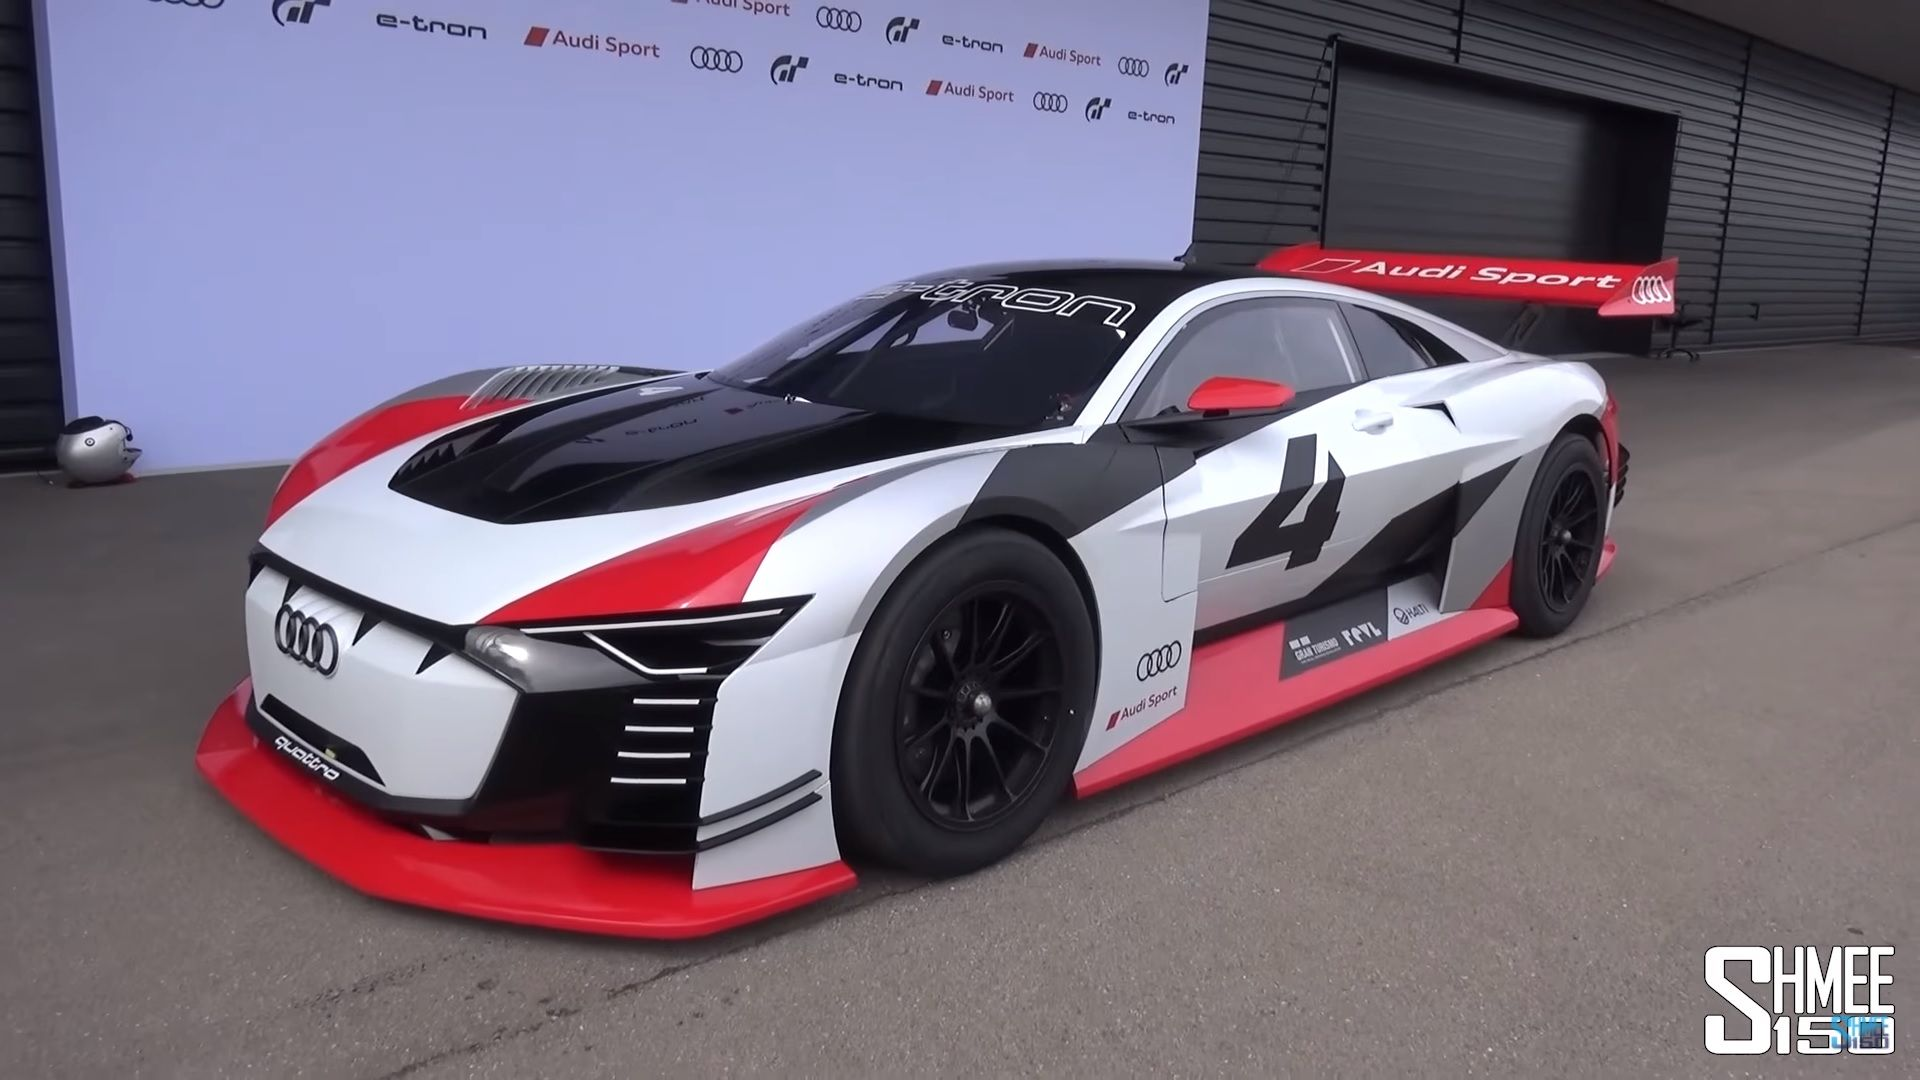 Audi Turned The E Tron Vision Gran Turismo Concept Into A Real Life Drivable Track Car